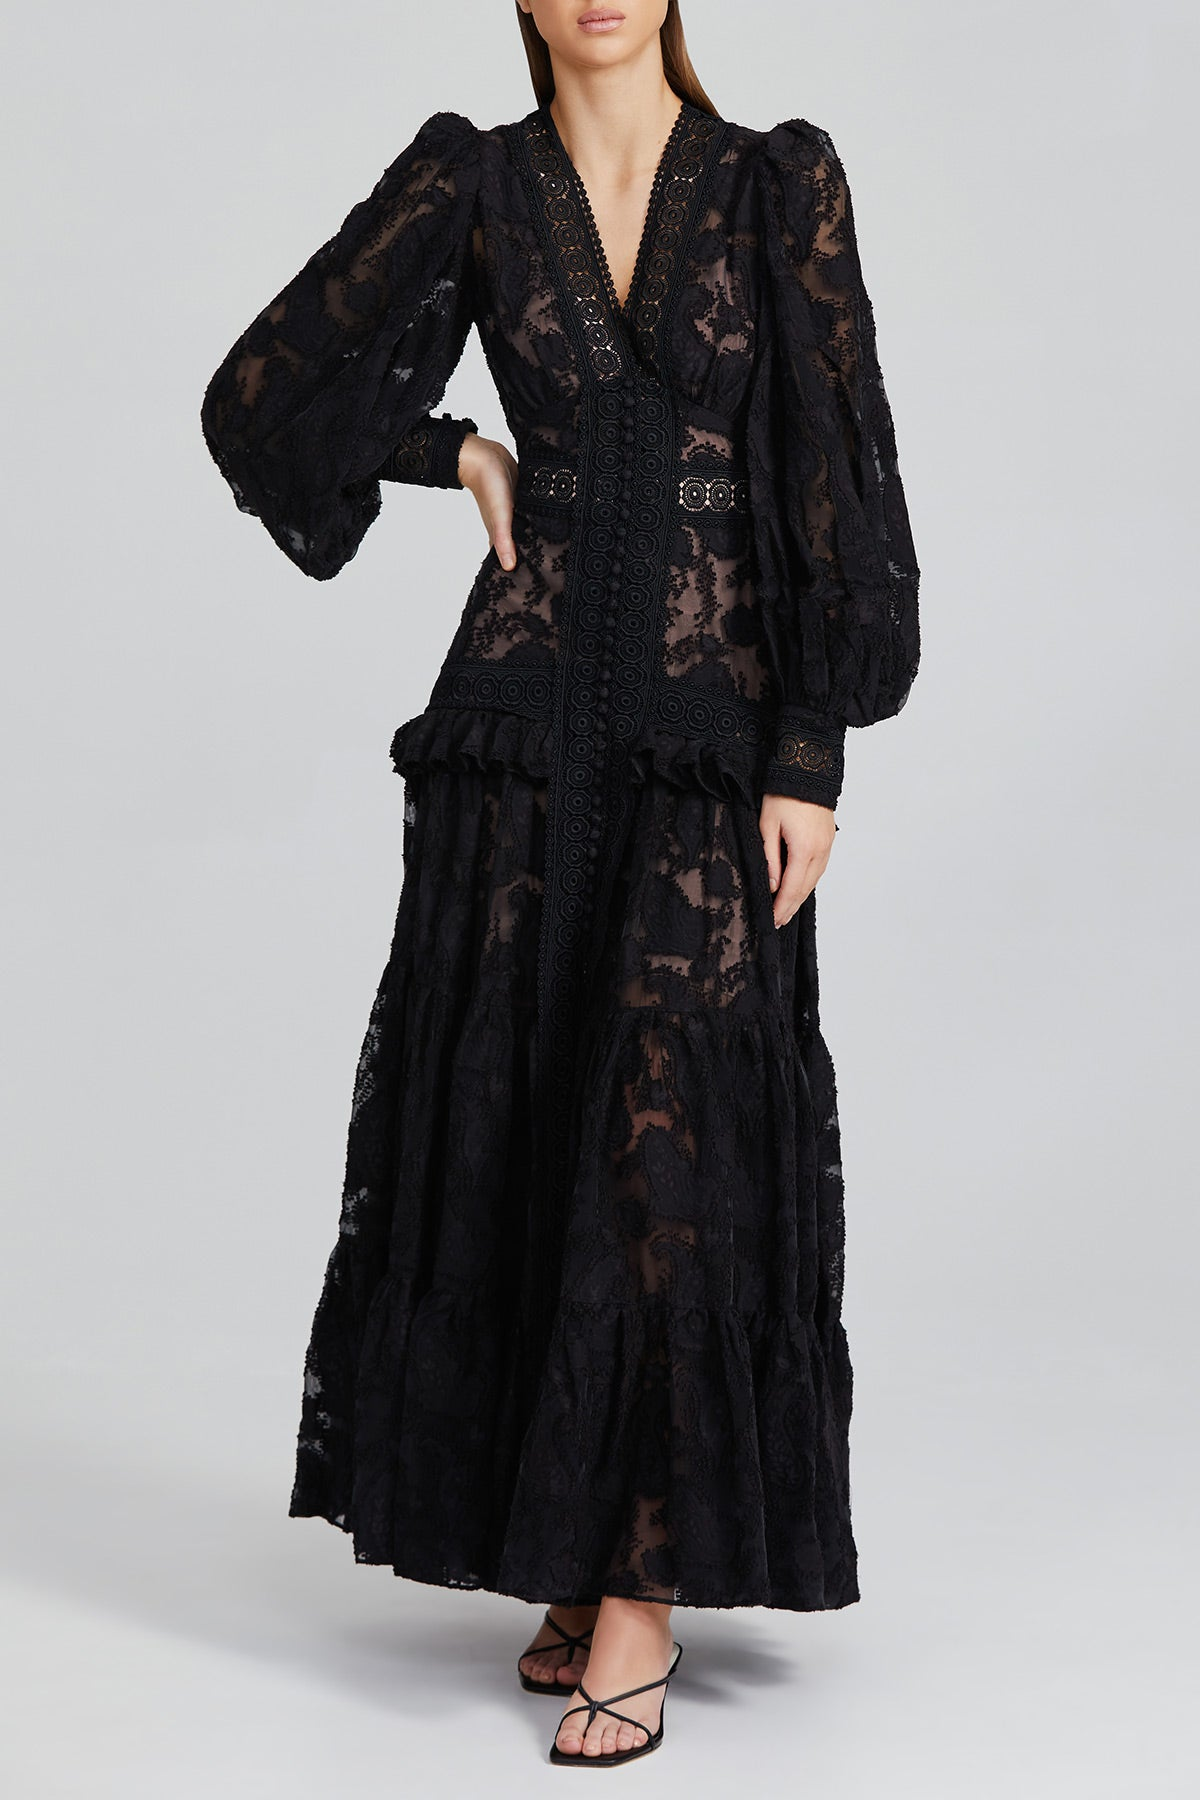 Long Sleeved, Black Lace Full Length Acler Dress